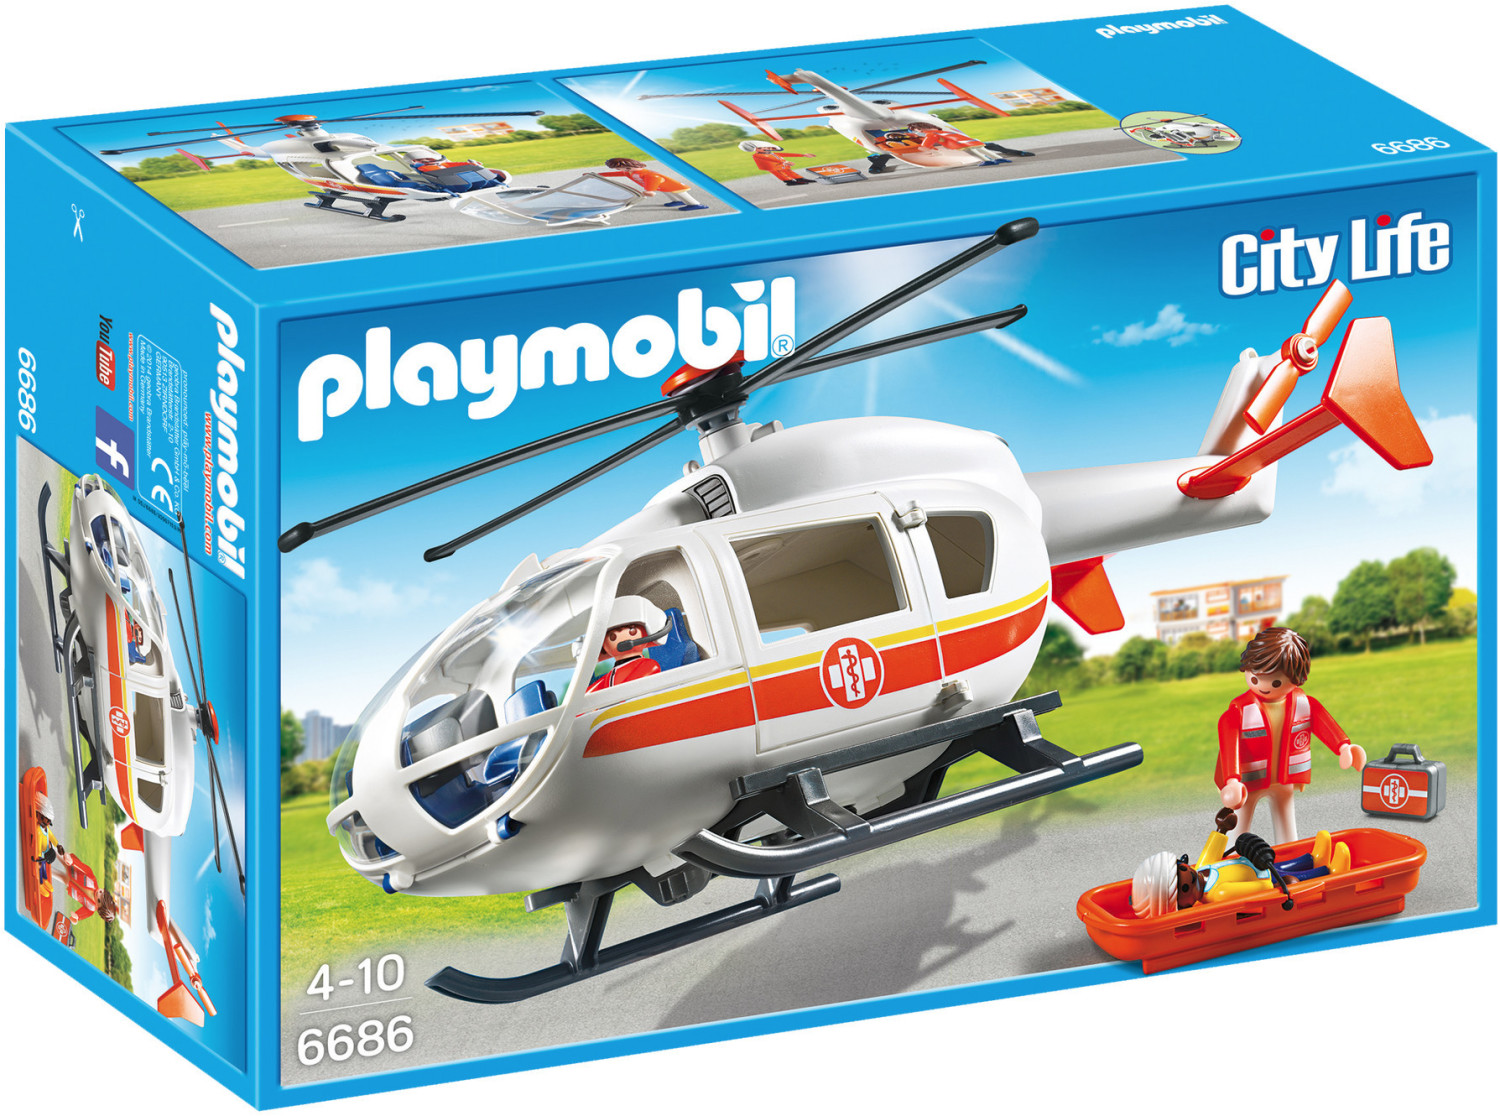 Playmobil City Life - Rettungshelikopter (6686)